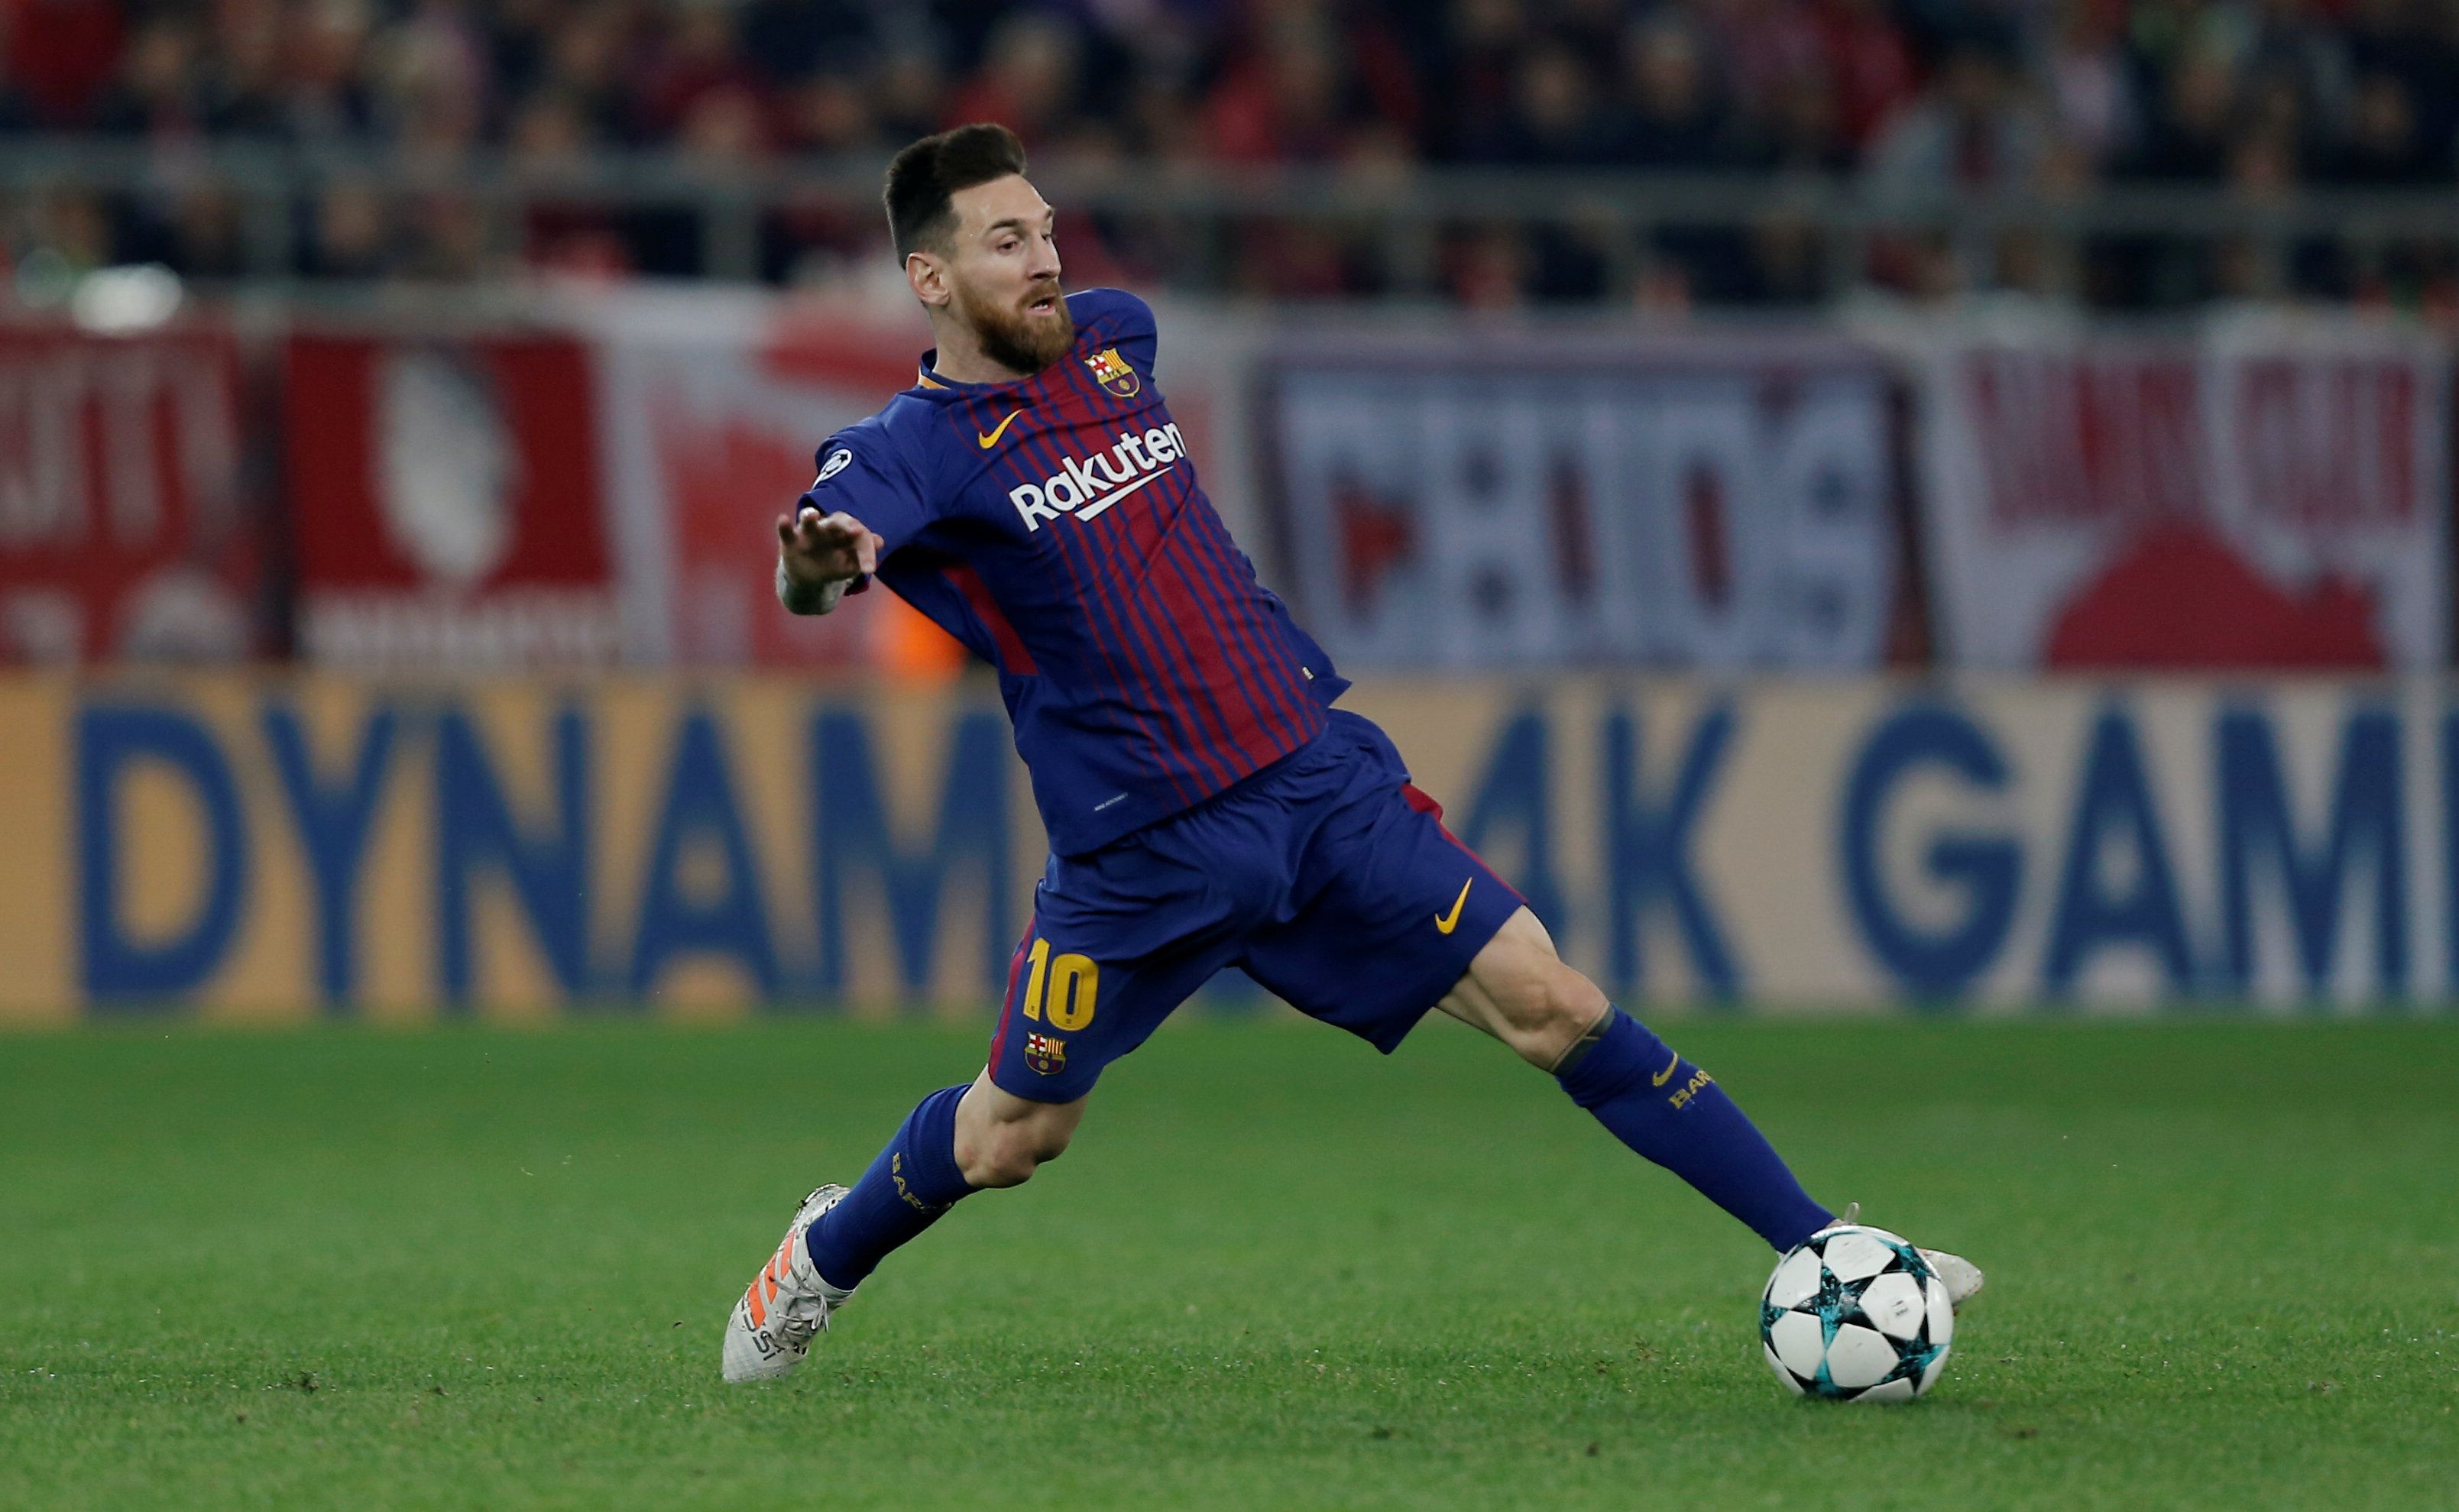 TOP BEST 24 LIONEL MESSI WALLPAPER PHOTOS HD 2018 - eDigital ...